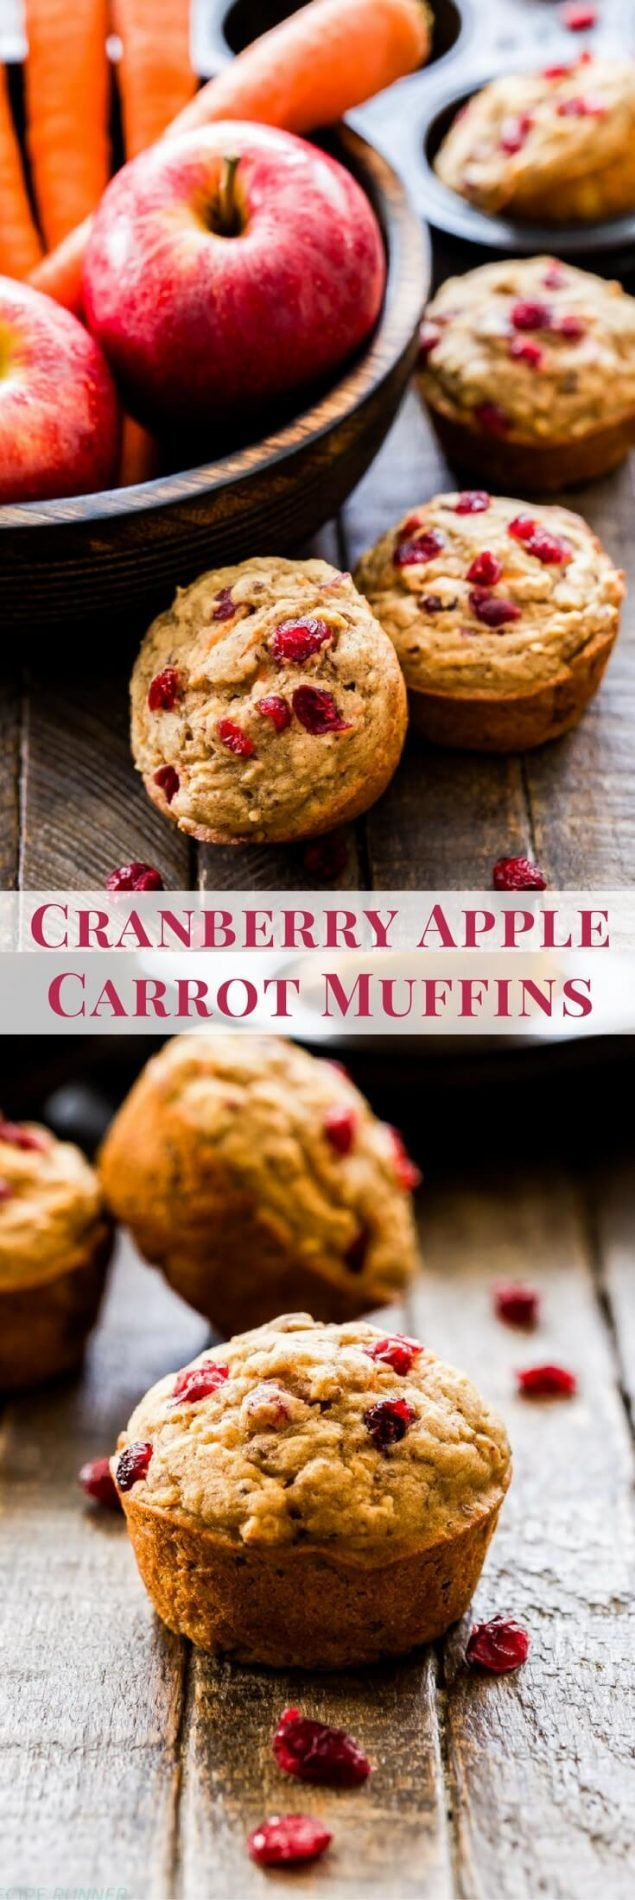 Whole wheat and vegan friendly muffins loaded with apples, carrots, cranberries and pecans are the perfect way to start the morning! These Cranberry Apple Carrot Muffins are hearty, moist and won't leave you hungry or with a sugar buzz.